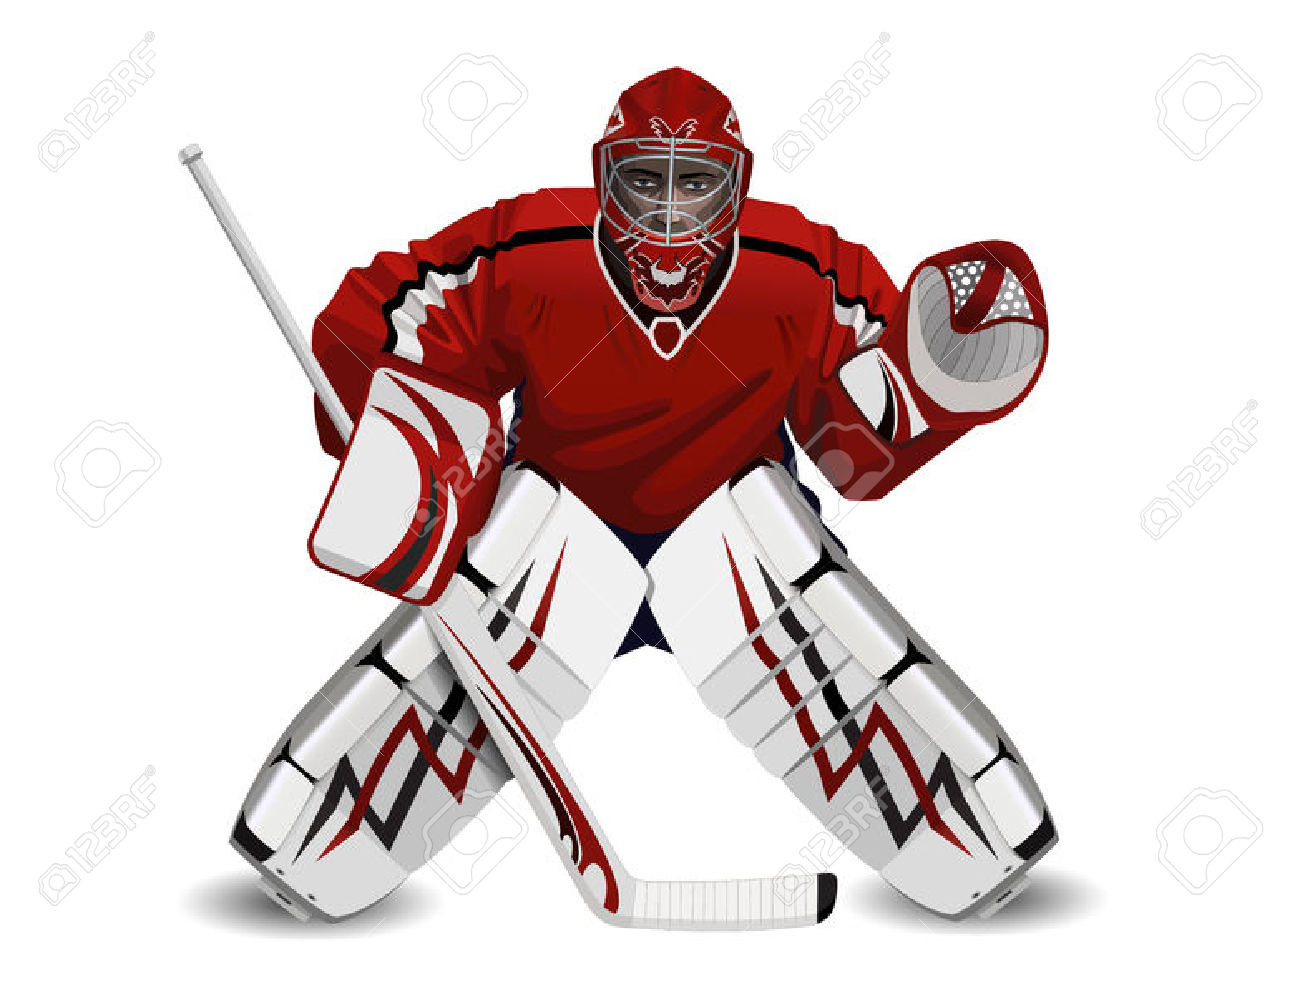 1300x994 Ice Hockey Clipart Cpm Software Free Download It Topology